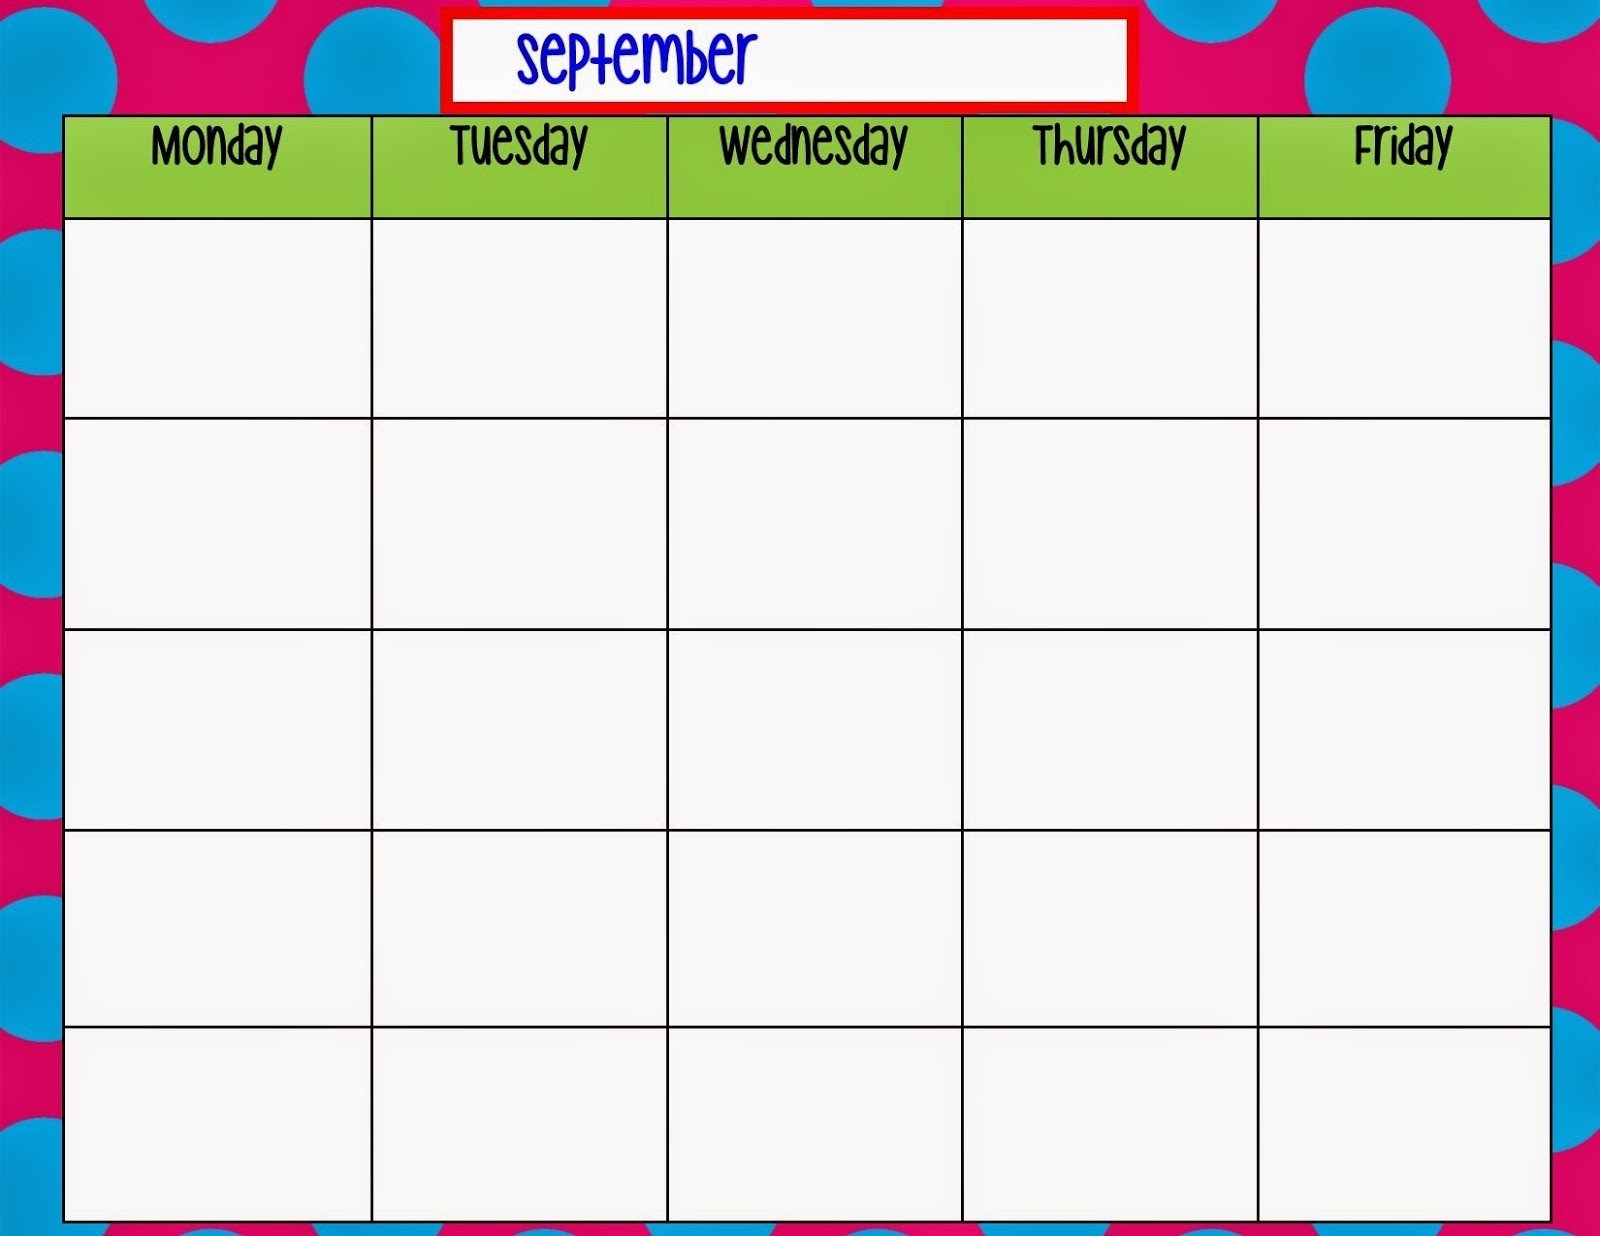 Blank Monday Through Friday Work Schedule Calendar Printable